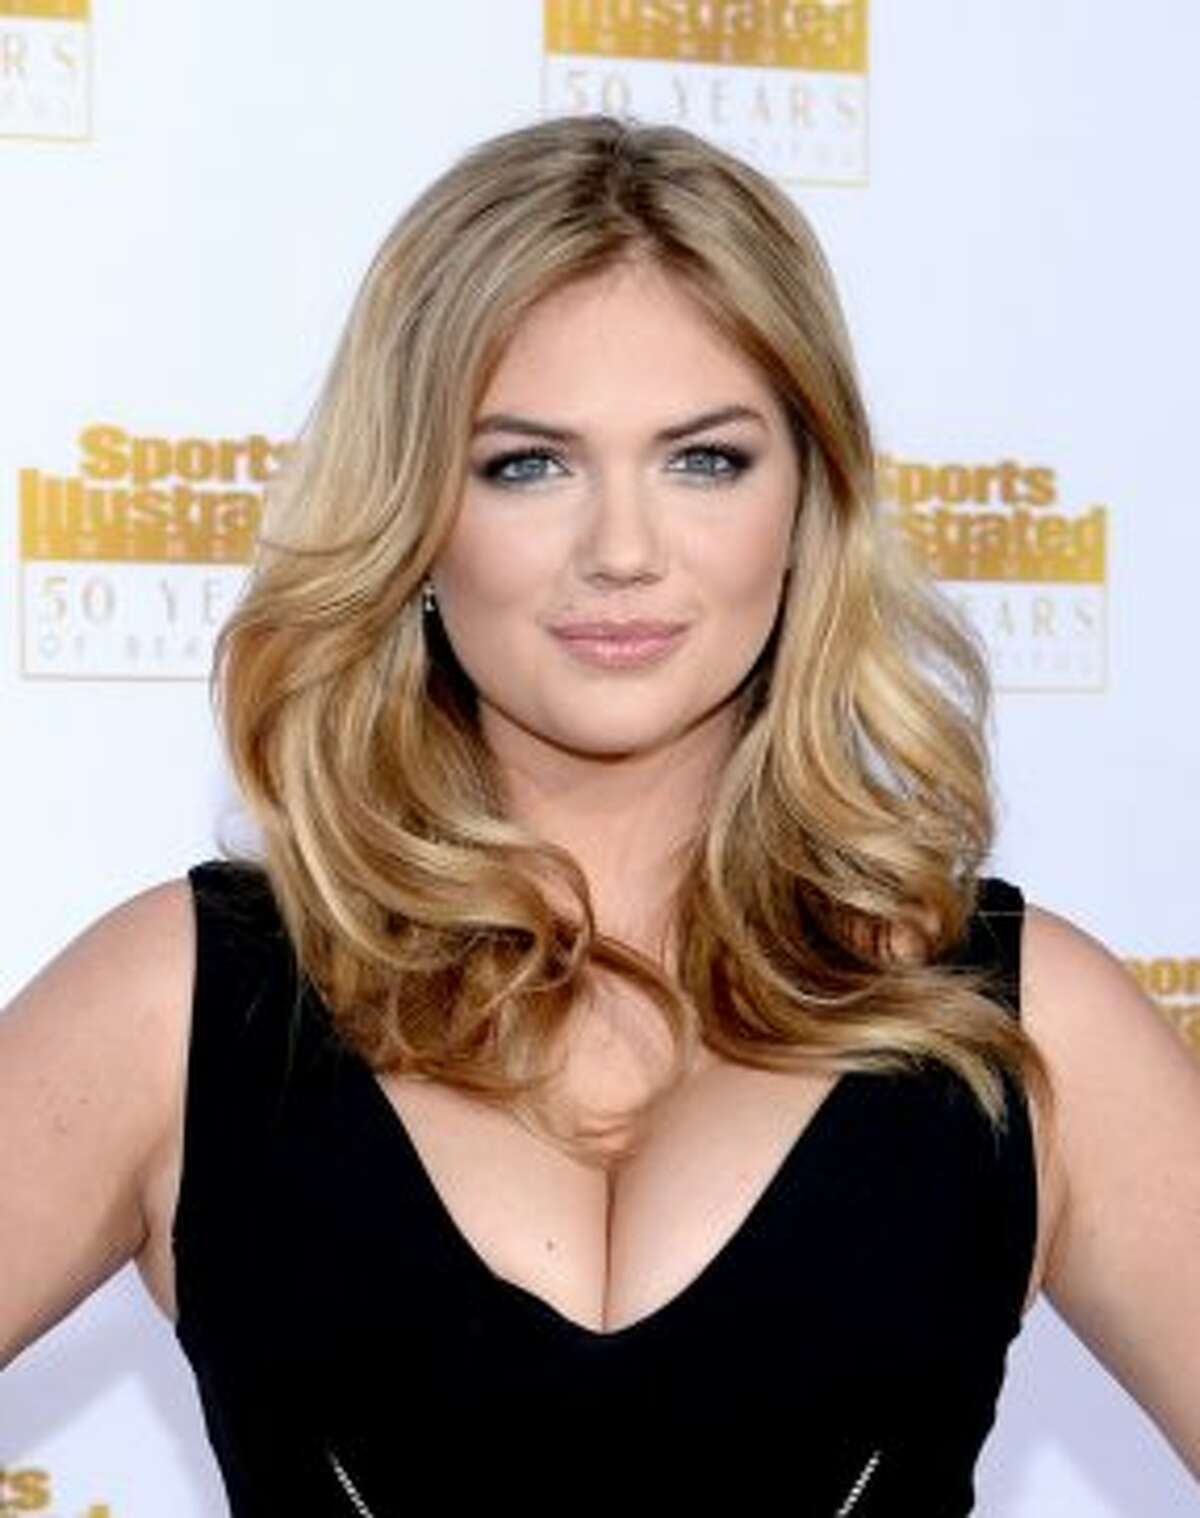 Take a look at some of Kate Upton's hottest looks through the years.